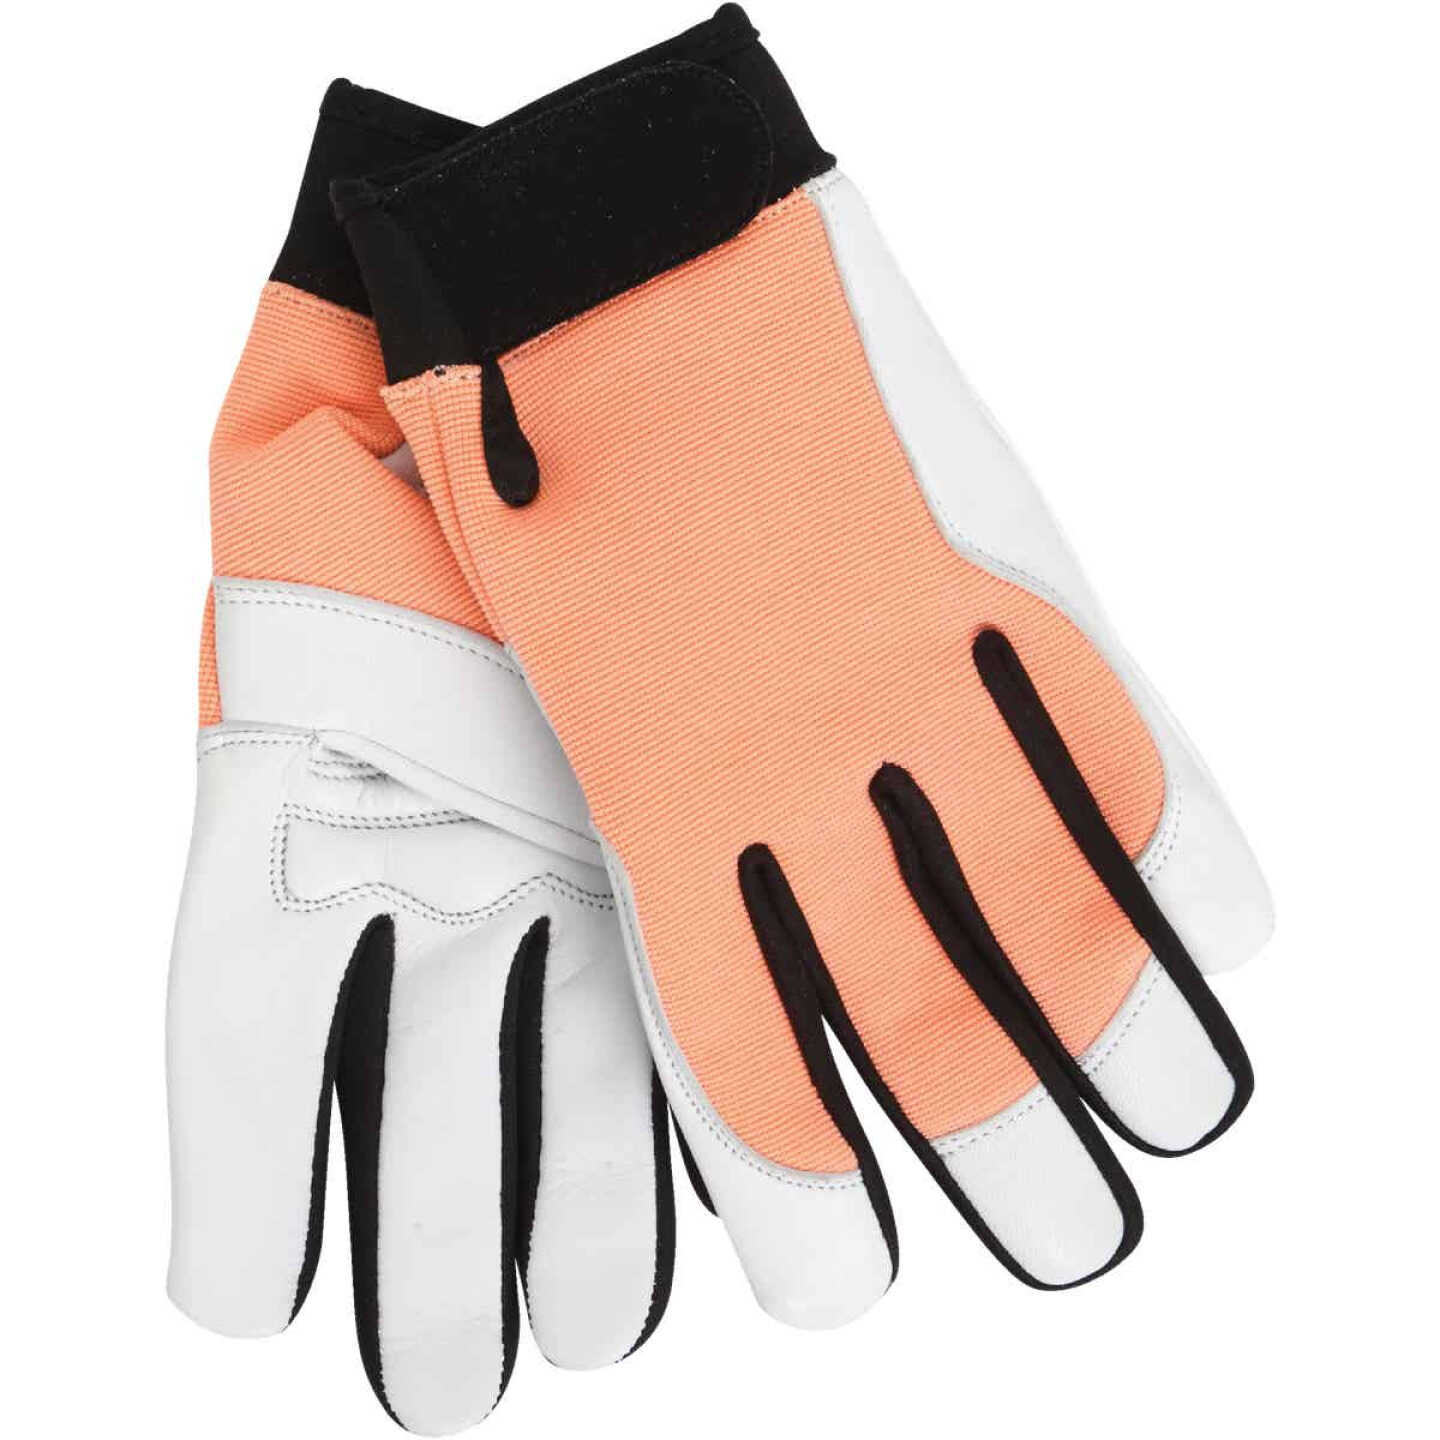 Midwest Gloves & Gear Women's Small Goatskin Leather Work Glove Image 1